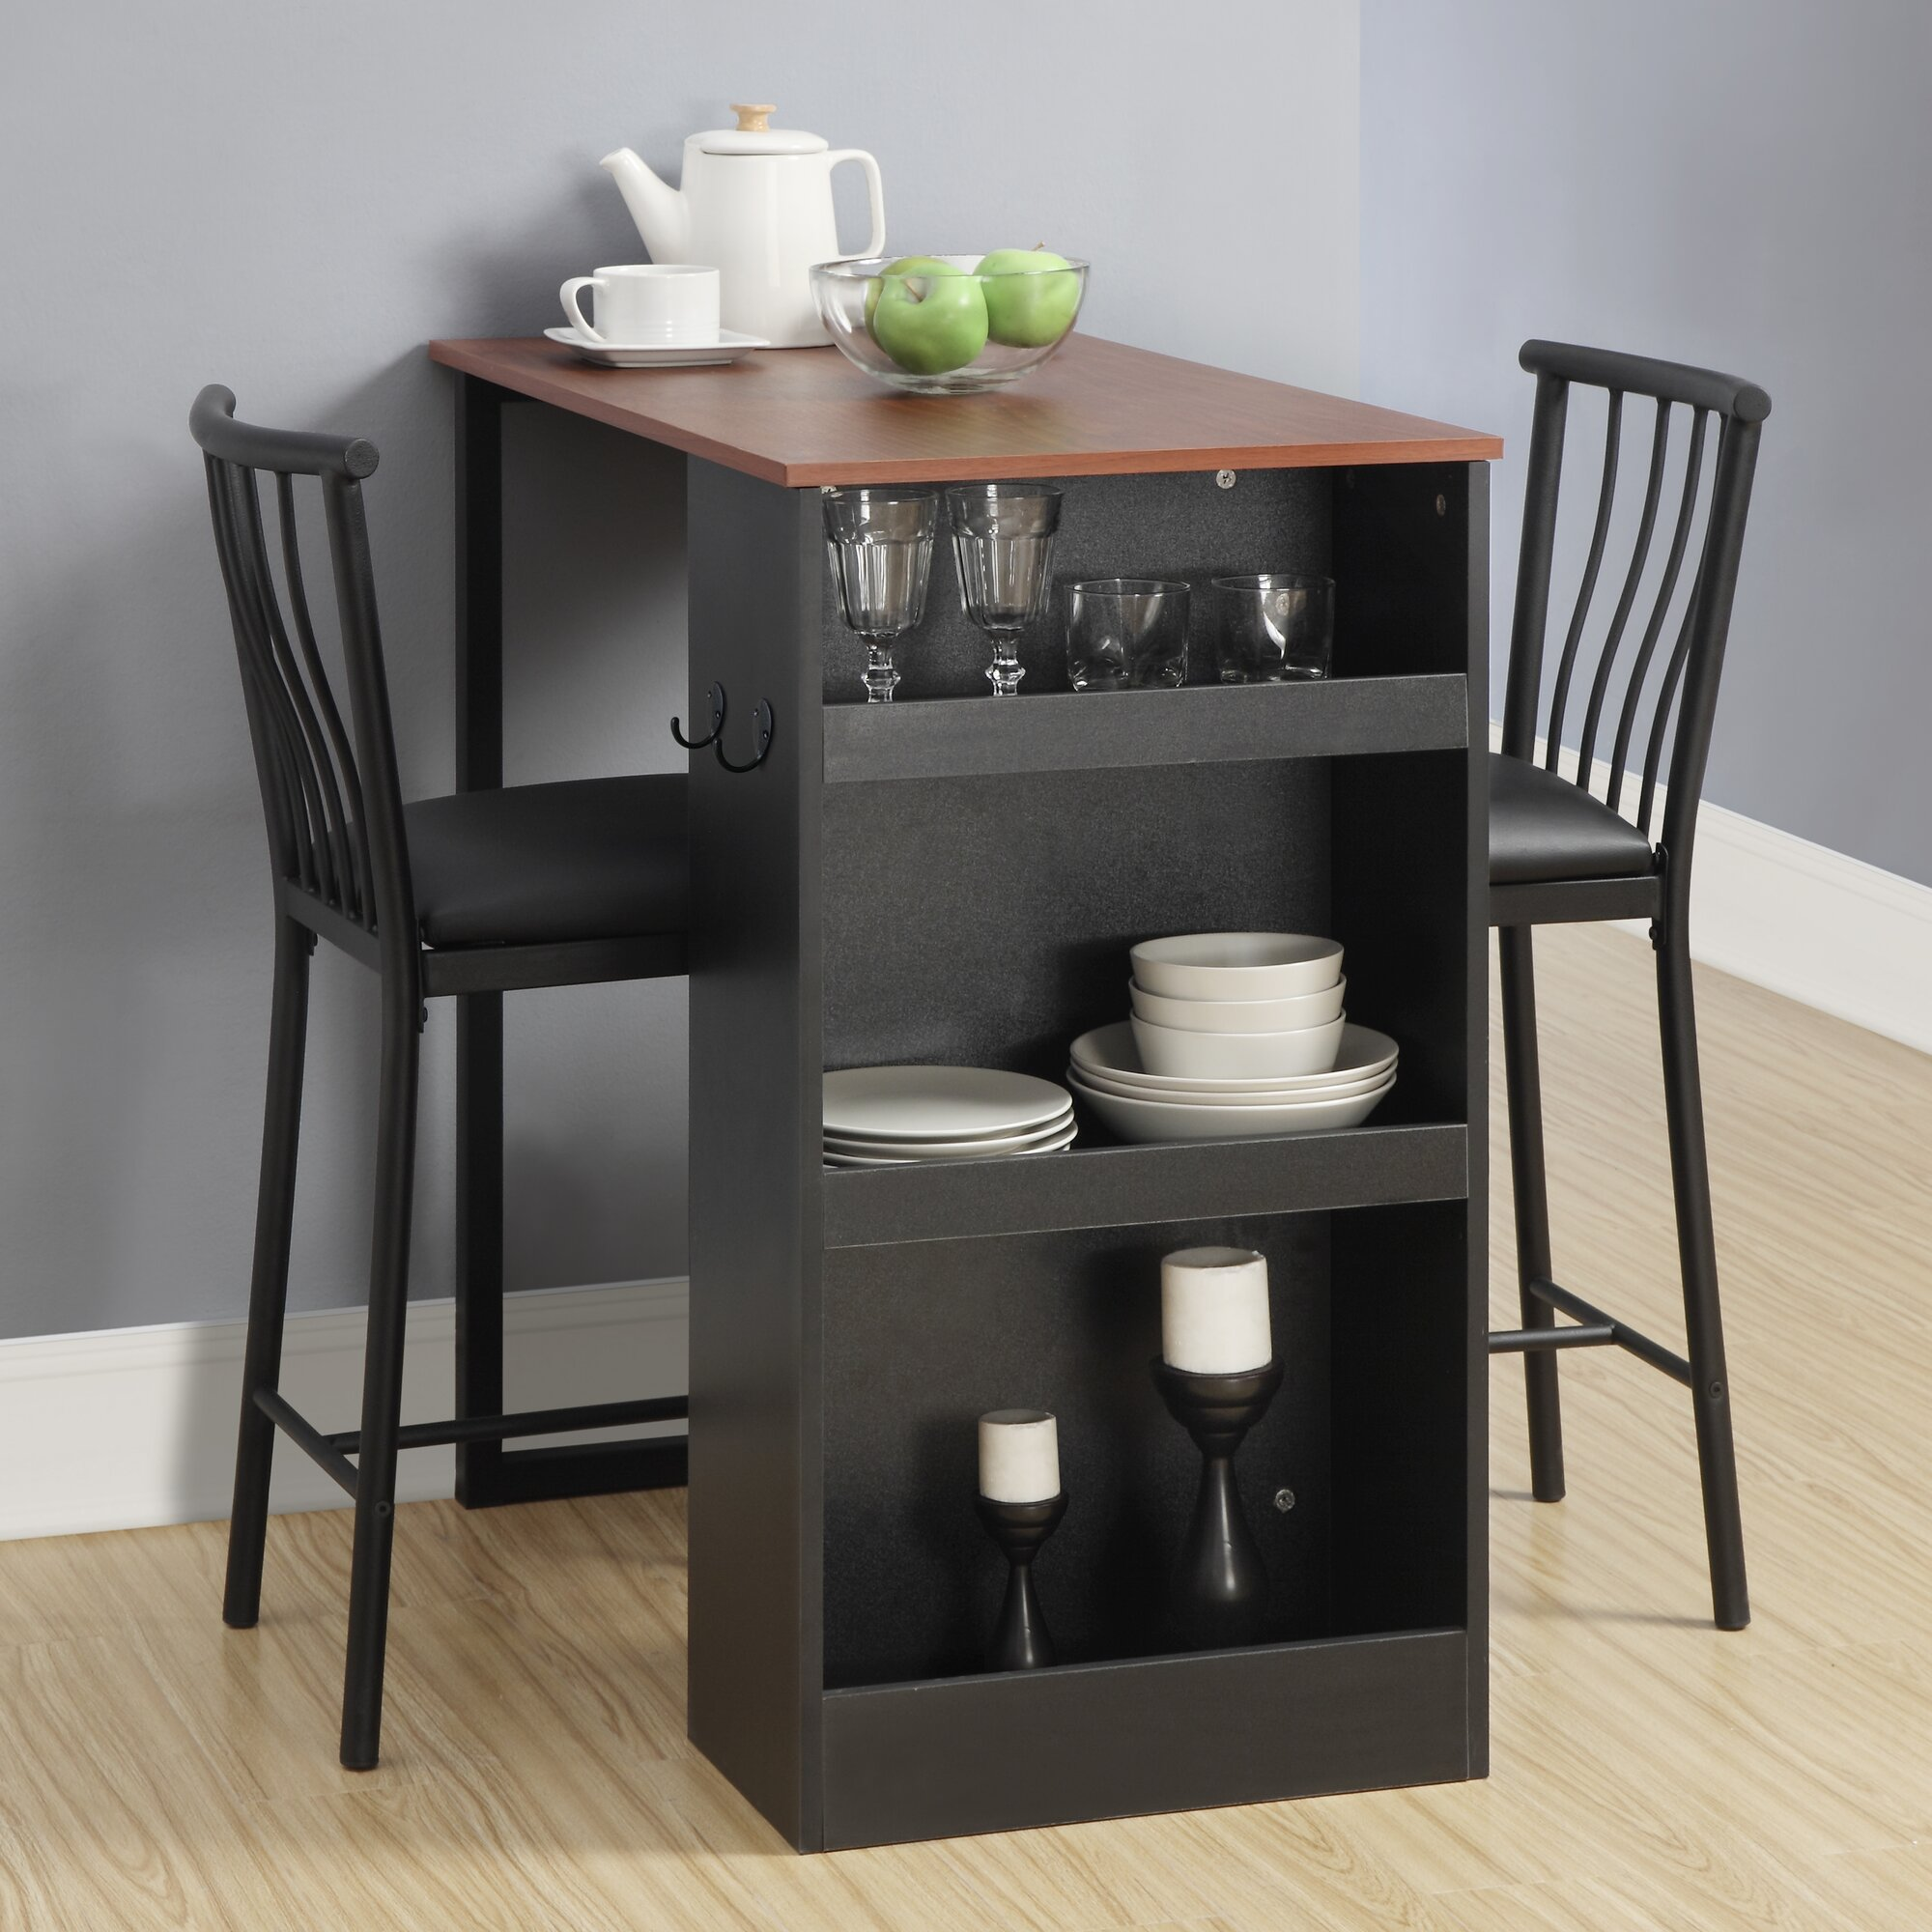 Kitchen pub table and chairs - Francis 3 Piece Counter Height Pub Table Set